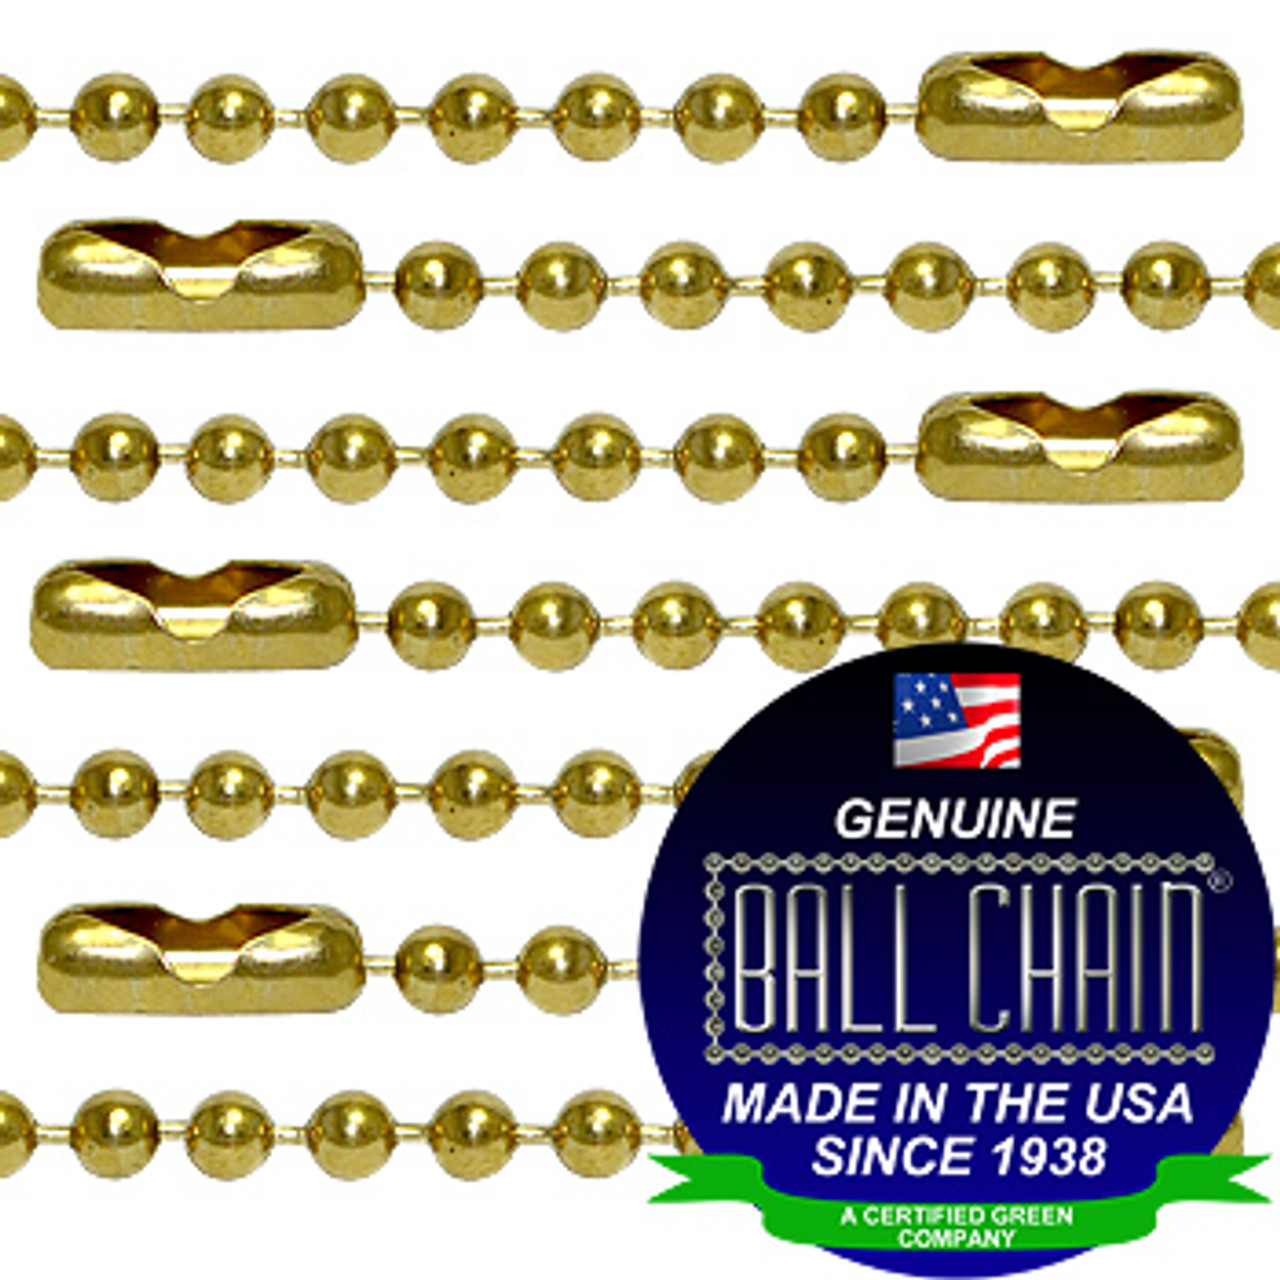 #6 Brass Plated Steel Ball Chains with Connector - 12 Inch Length